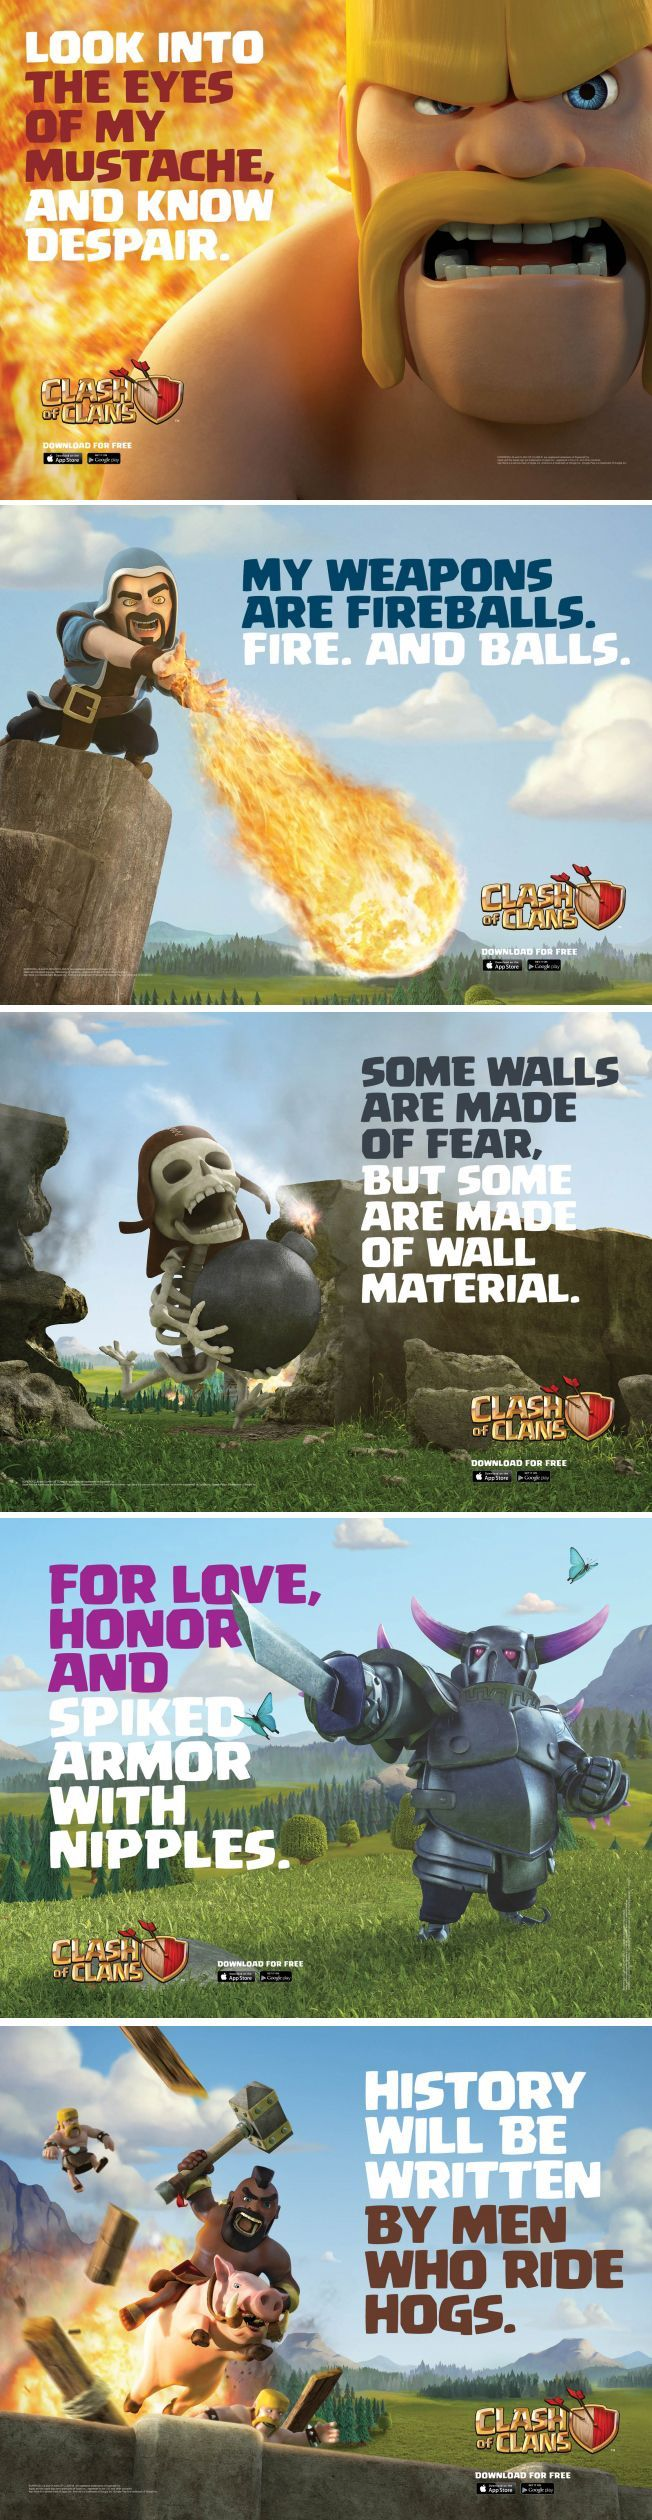 clash of the clans advertisements www.clasherlab.com Visit For Website For Laster Clash of clans Content and Updates ! #Clasherlab